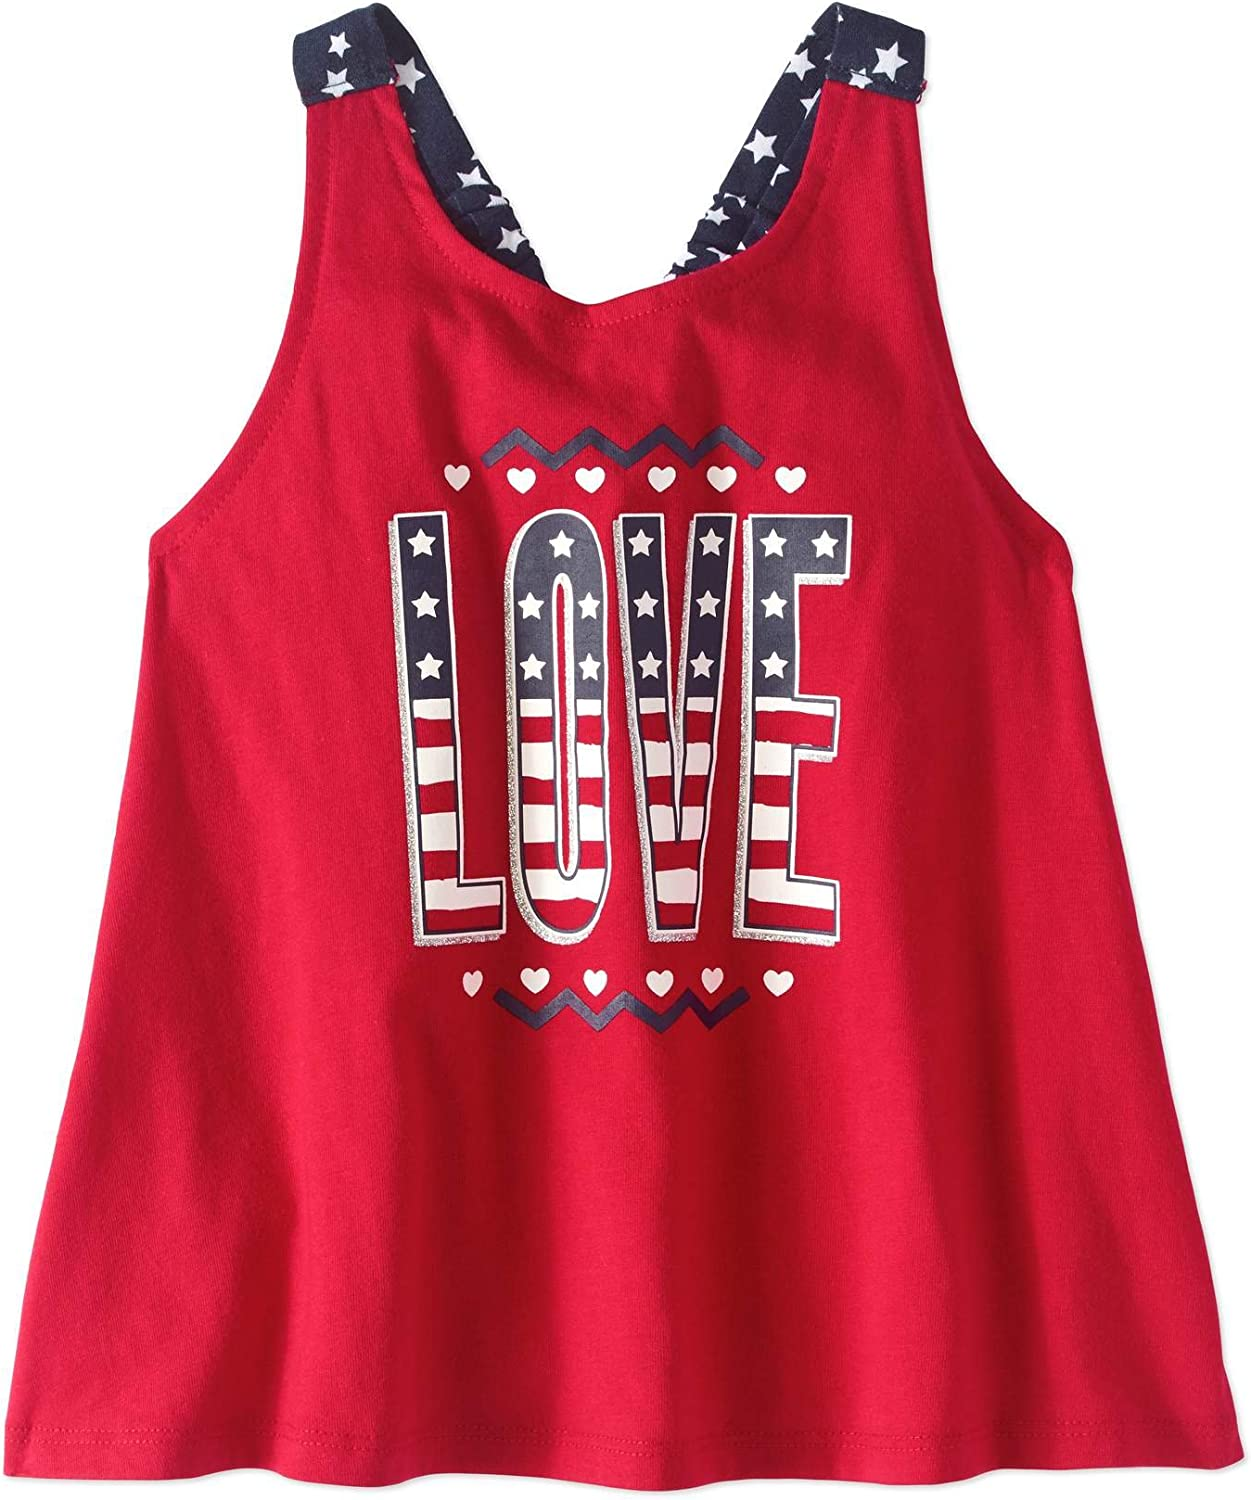 Sizes 2T-5T Assorted Toddler Girl 4th of July Graphic Tank Top Shirt